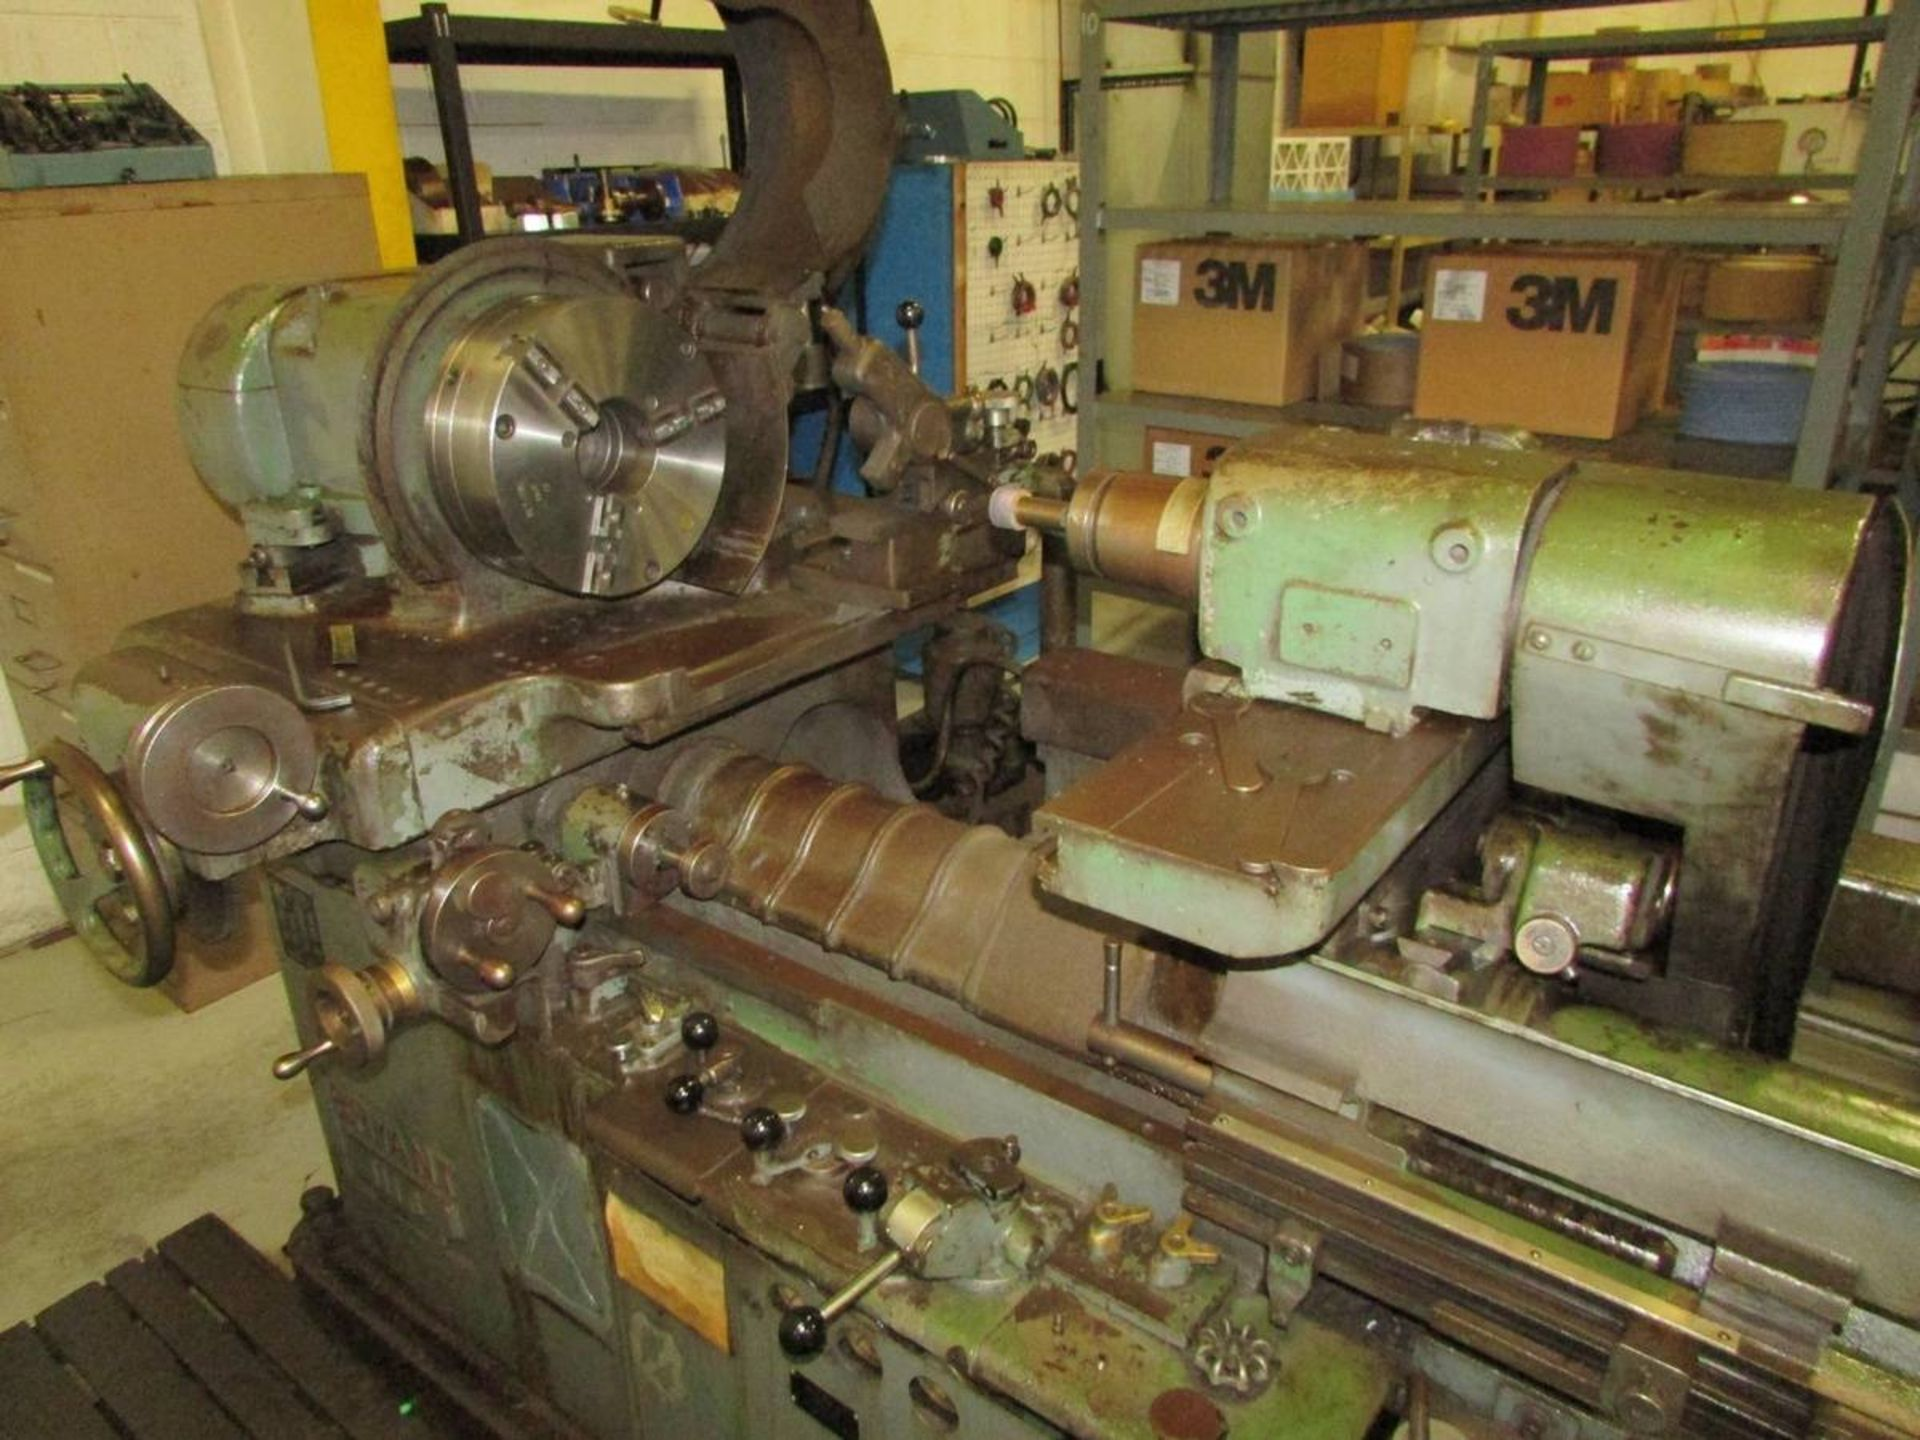 1981 Bryant 1116 ID Cylindrical Grinder - Image 3 of 20